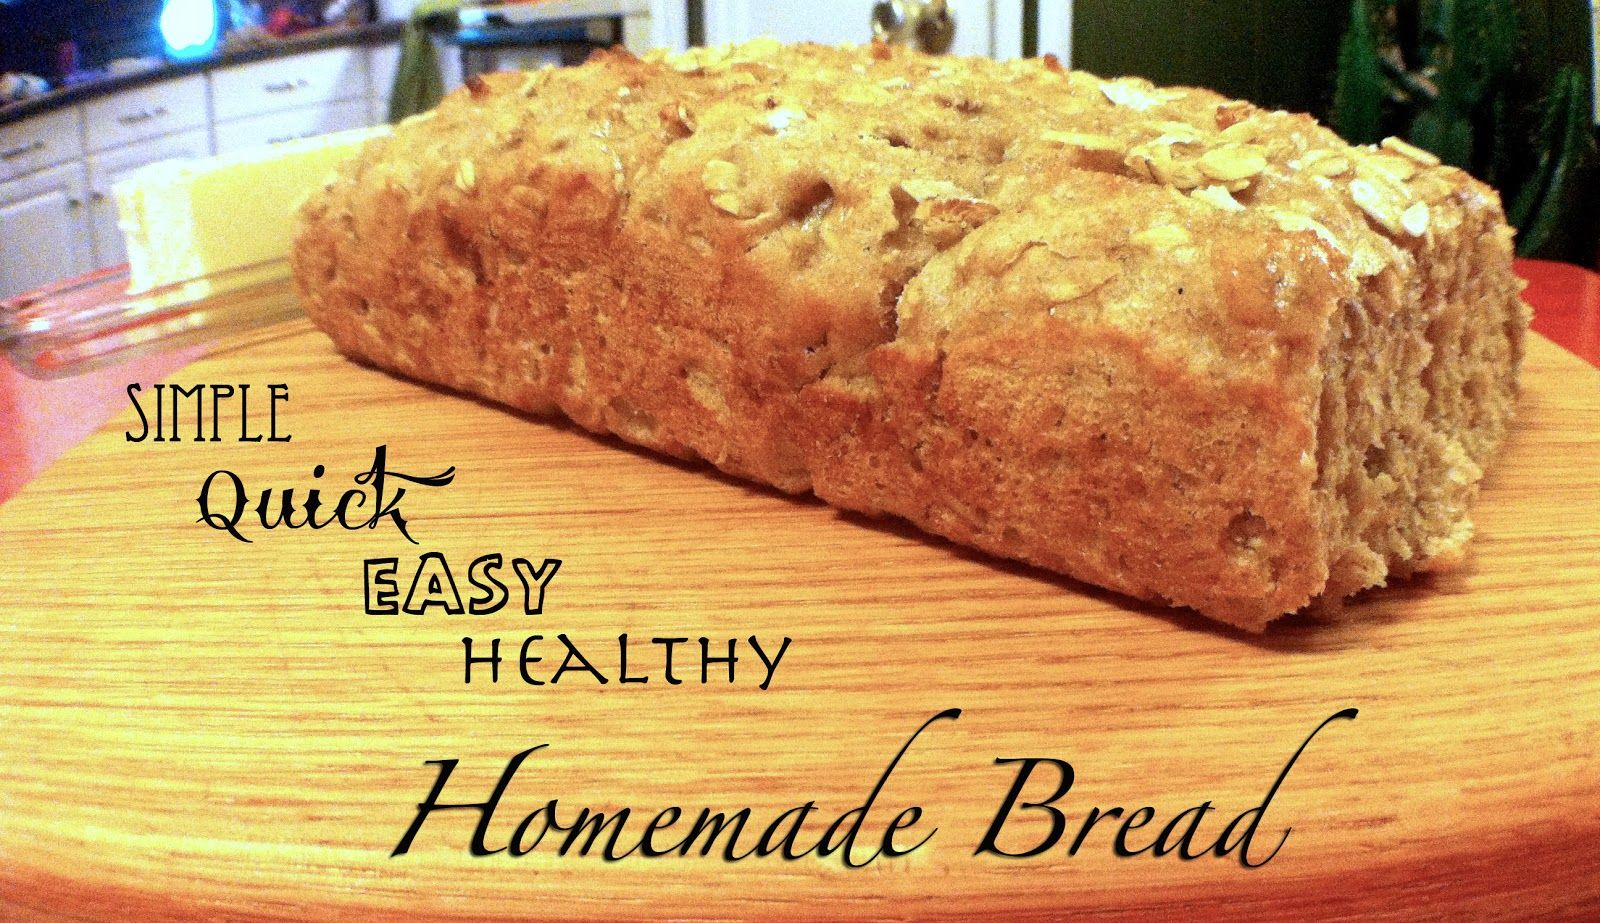 Simple Quick Easy Healthy Homemade Bread I Know